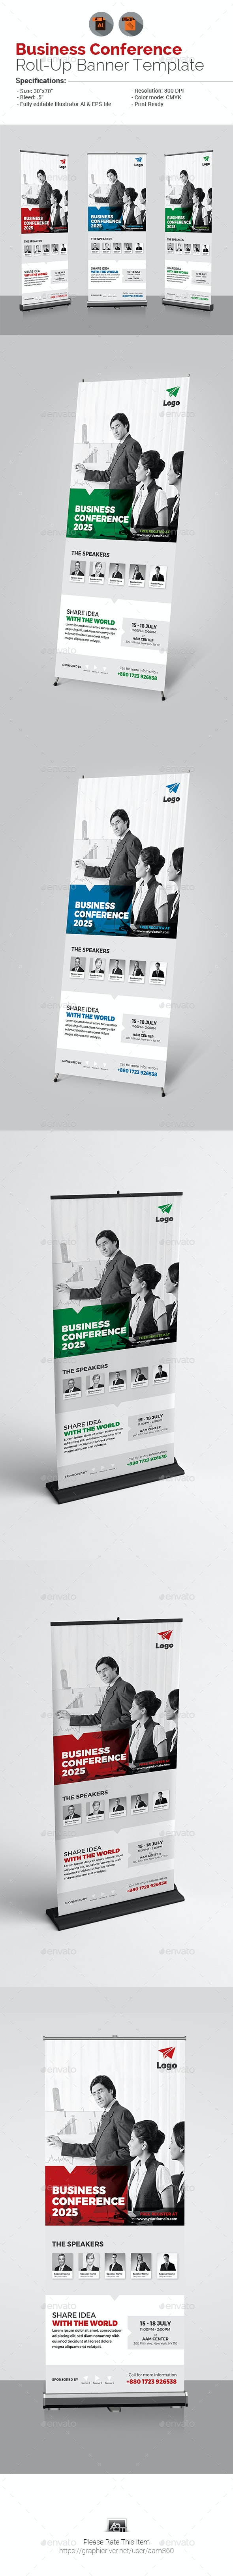 Conference or Event Roll-Up Banner - Signage Print Templates